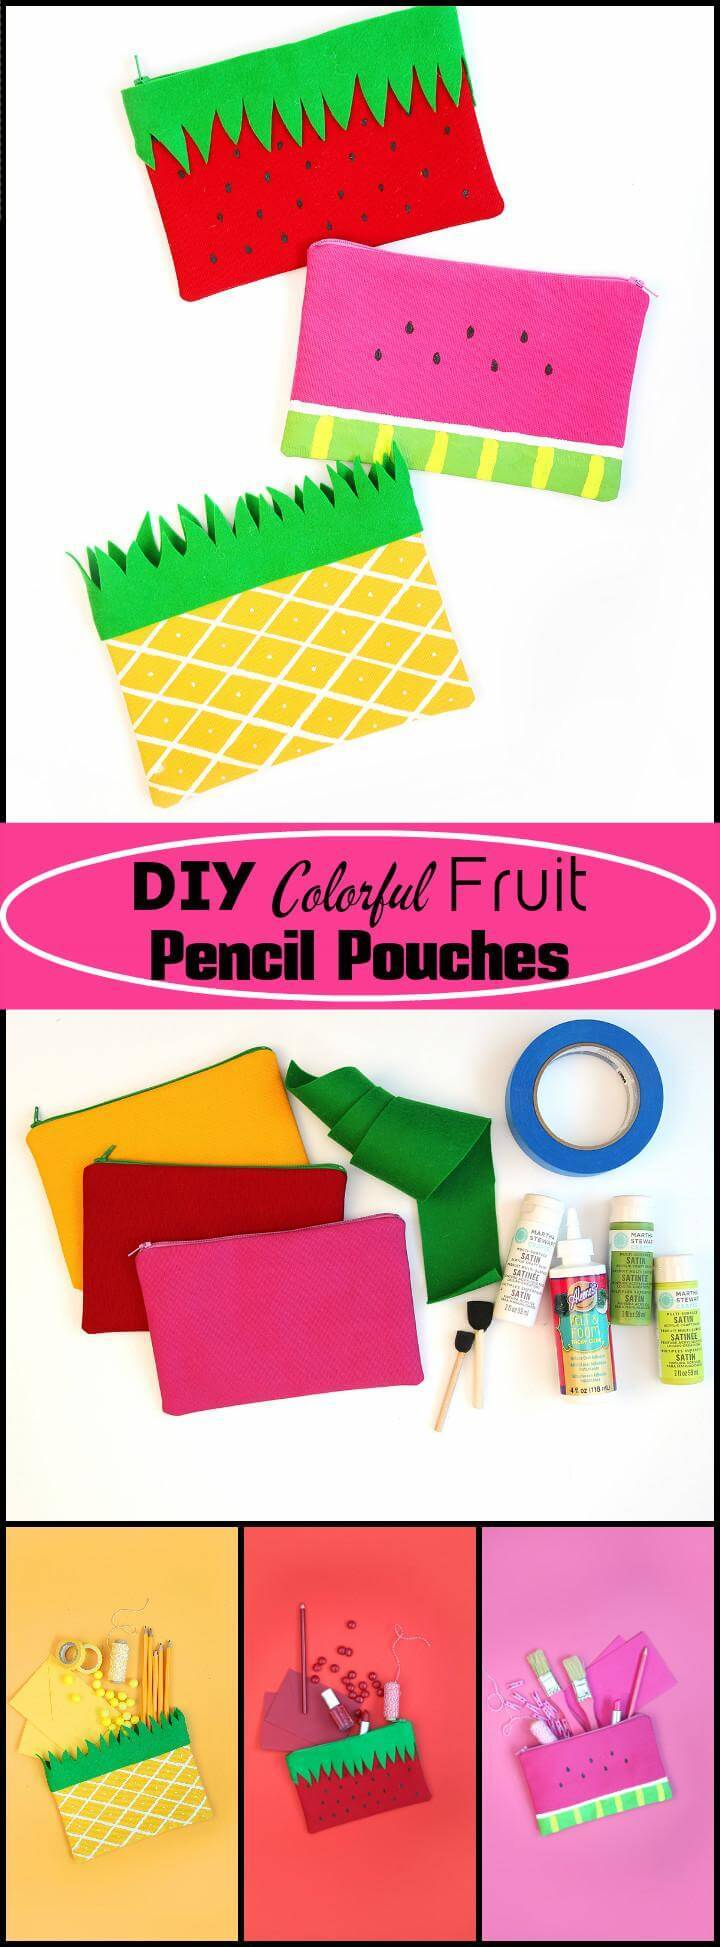 handmade colorful fruit pencil pouches